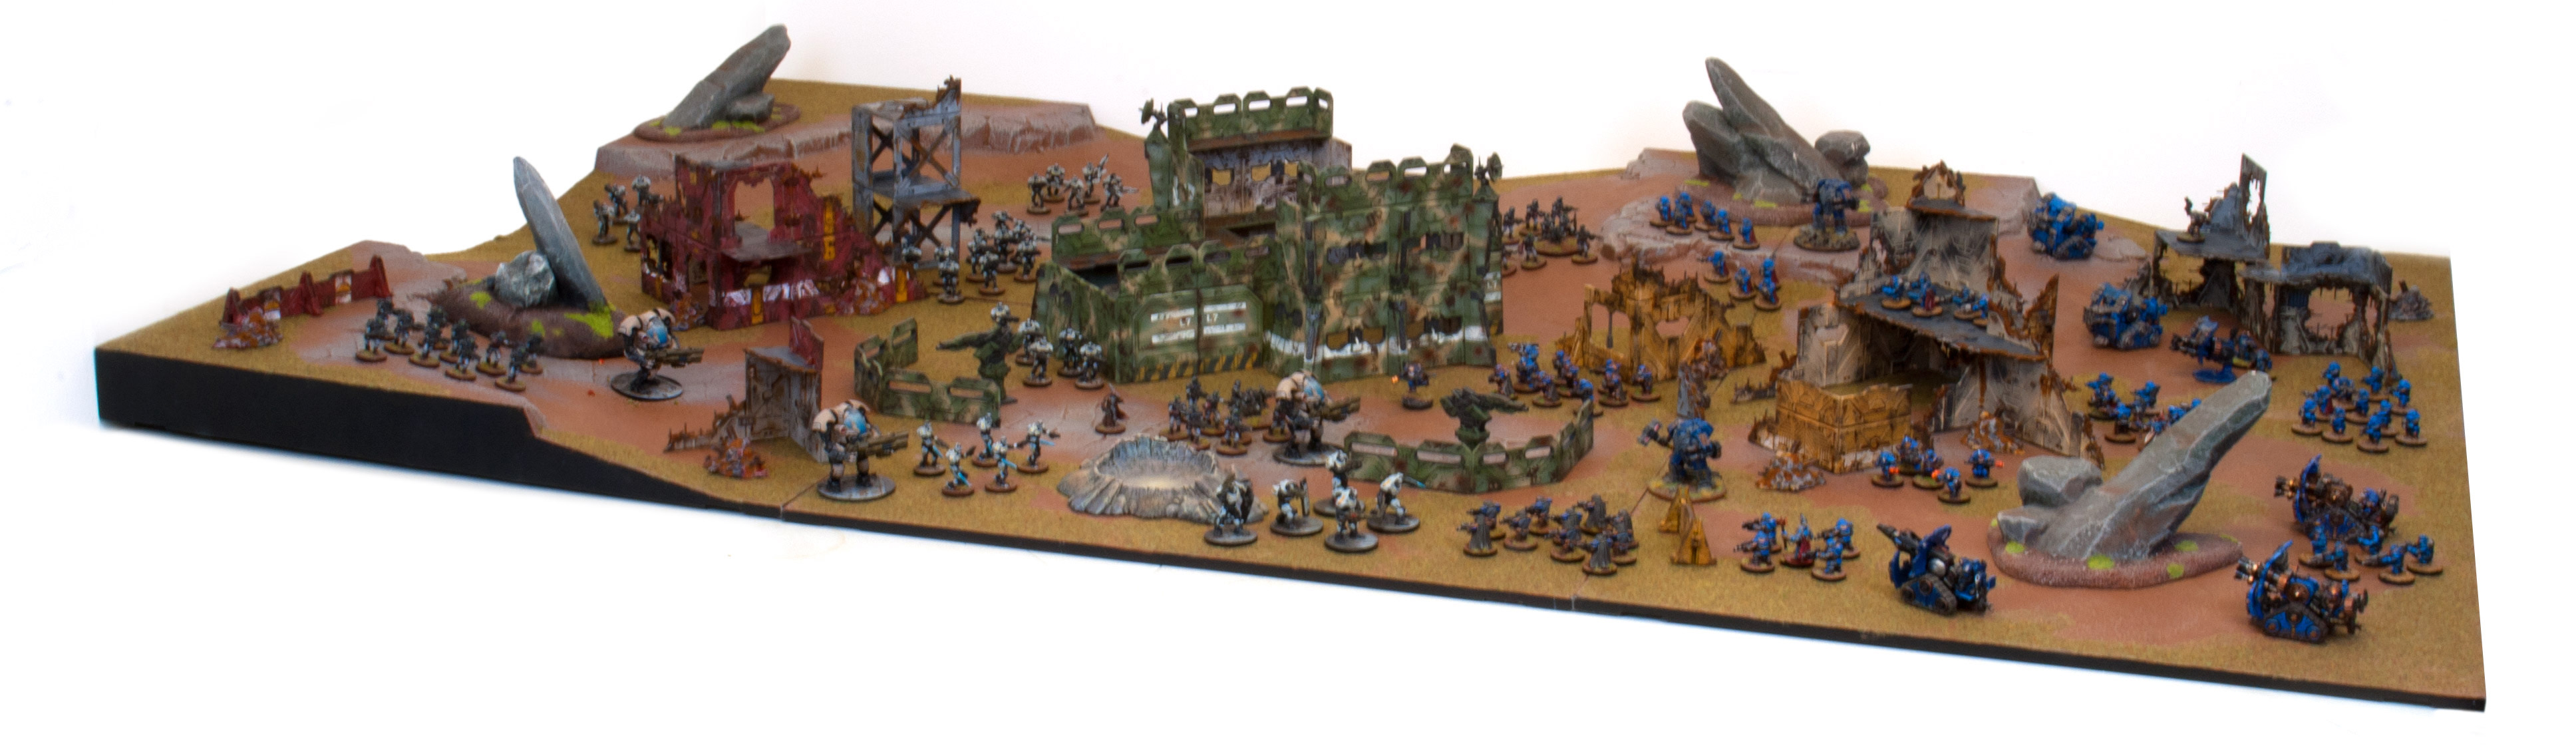 battlezones-ruins-on-a-table-2